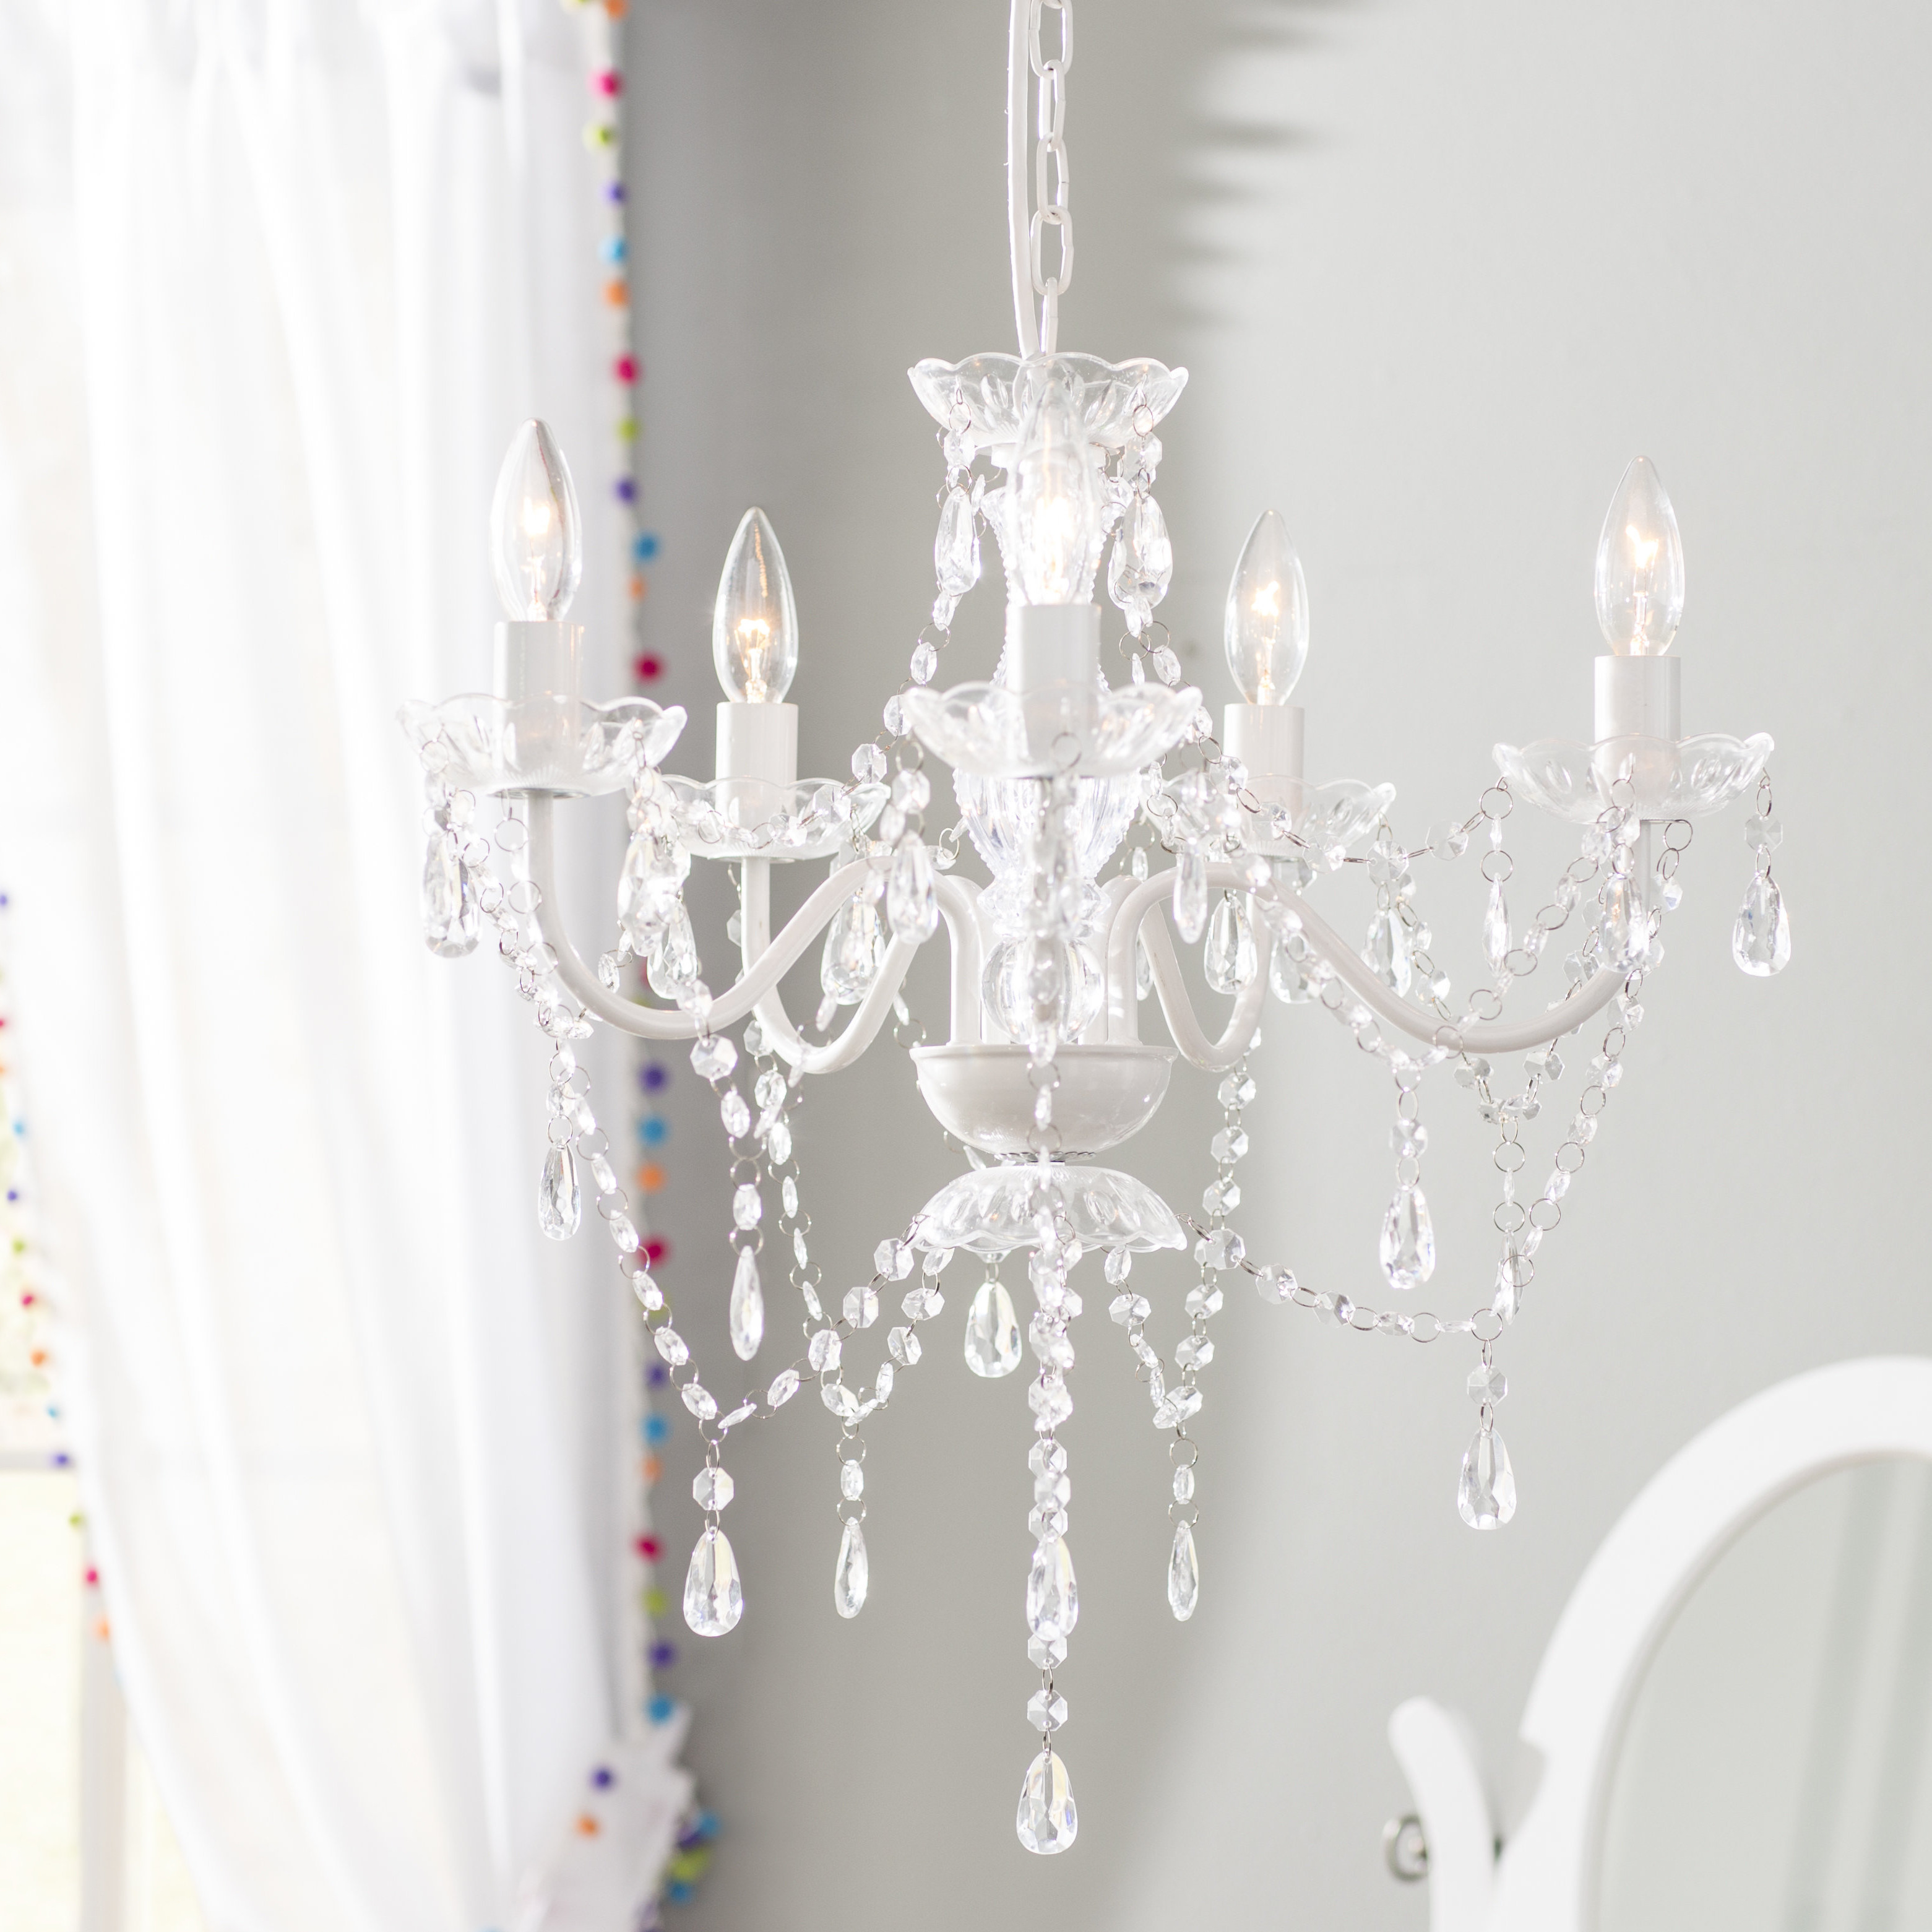 2020 Senoia 5-Light Candle Style Chandelier with Blanchette 5-Light Candle Style Chandeliers